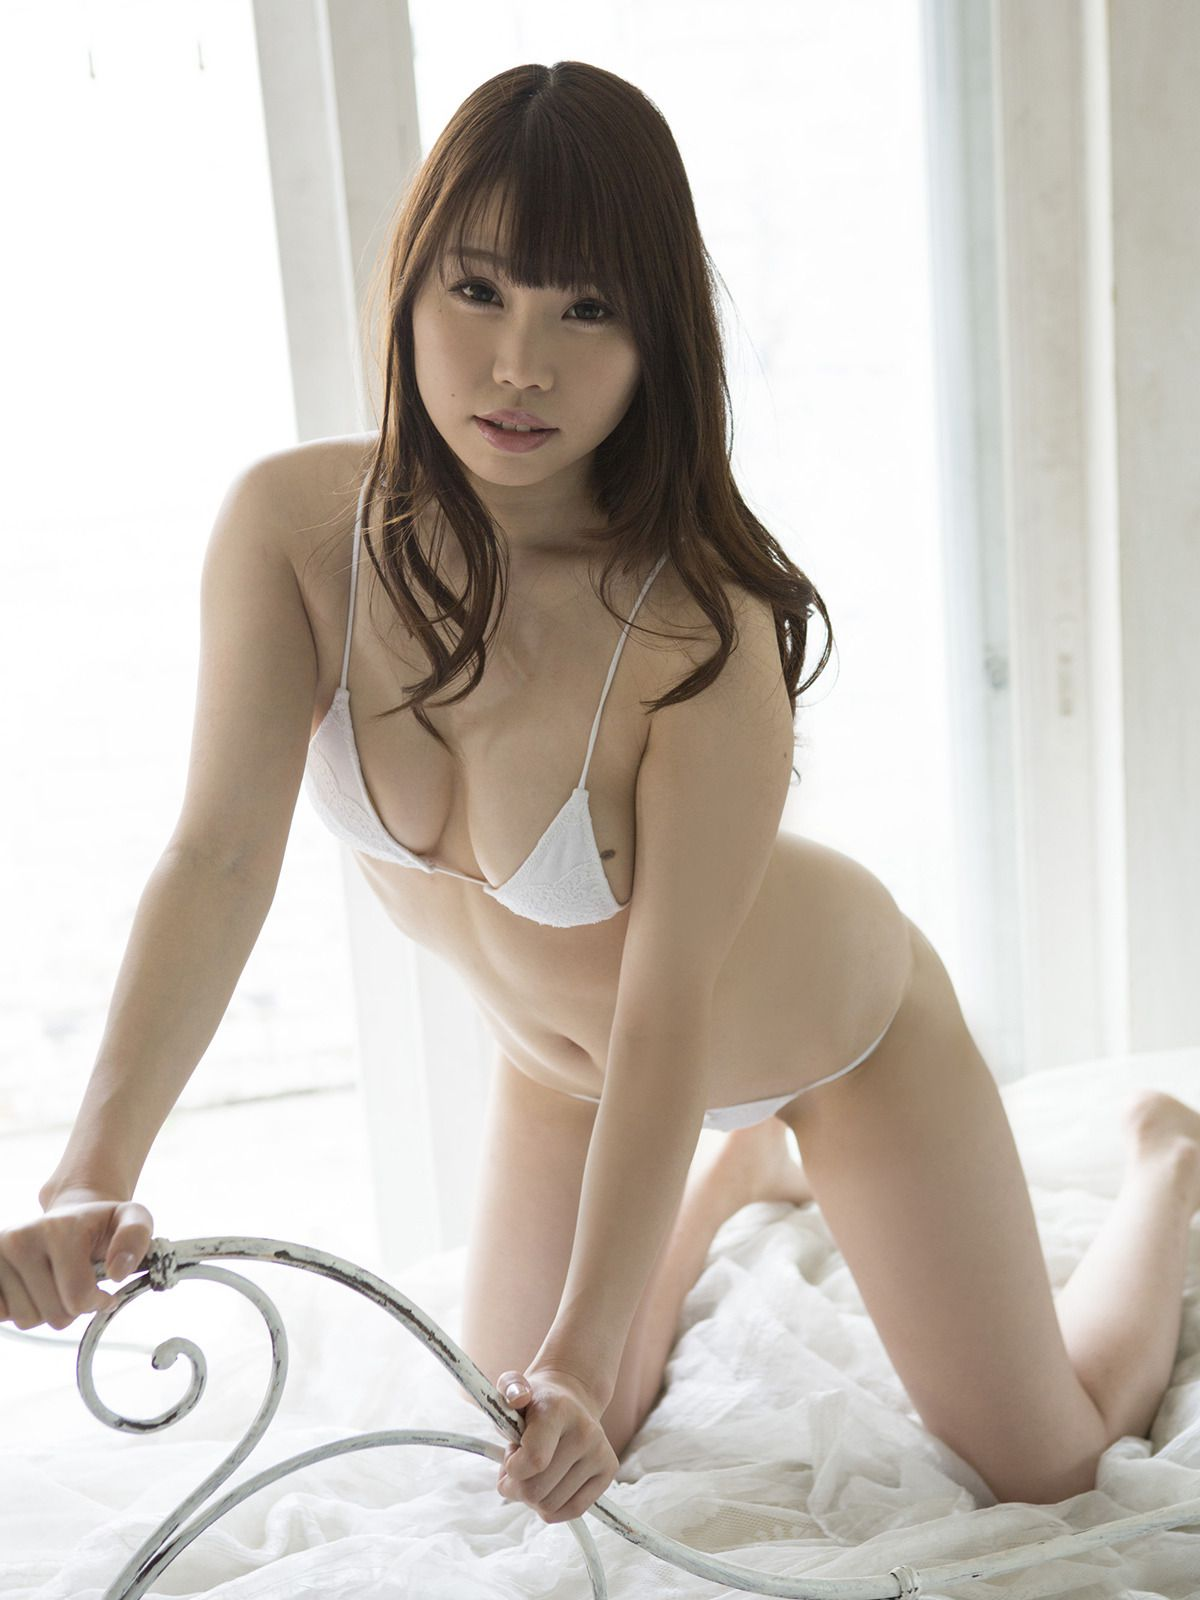 Mai Tsukamoto is naturally energized by the ample G breast006